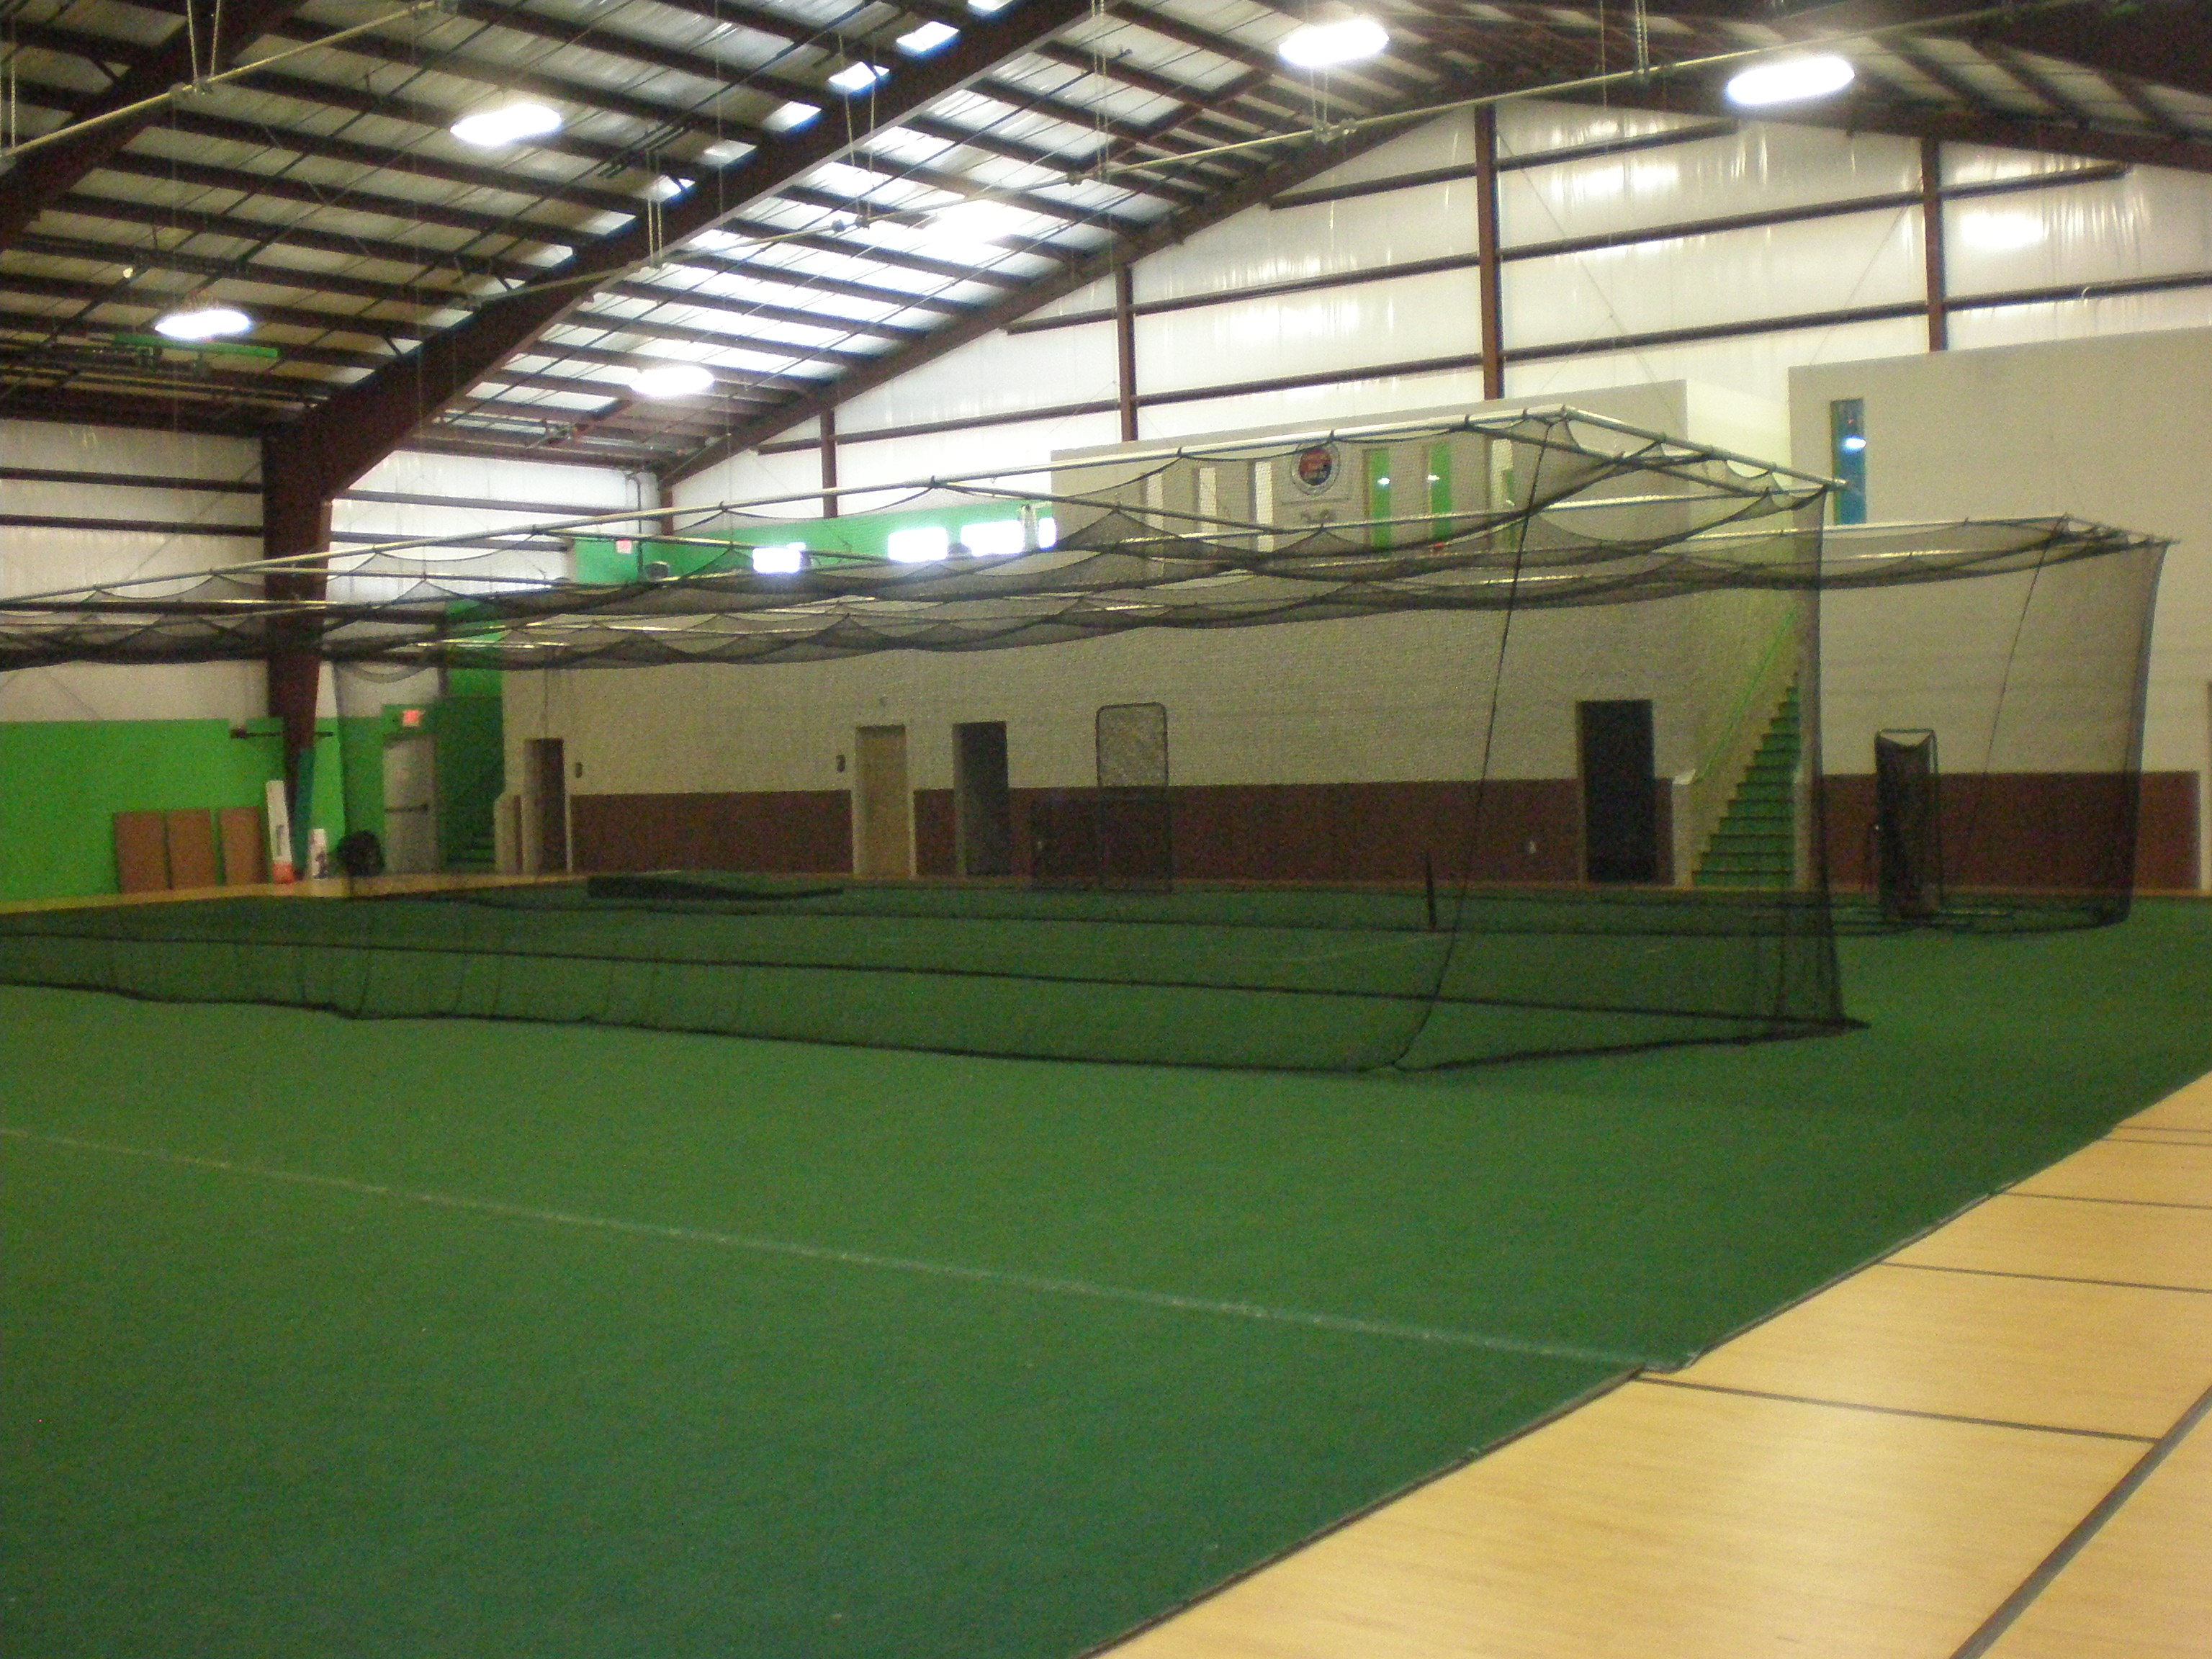 To Rent A Batting Cage For An Hour, Please Call Us Ahead Of Time At  860 689 0090 To Ensure Availability.